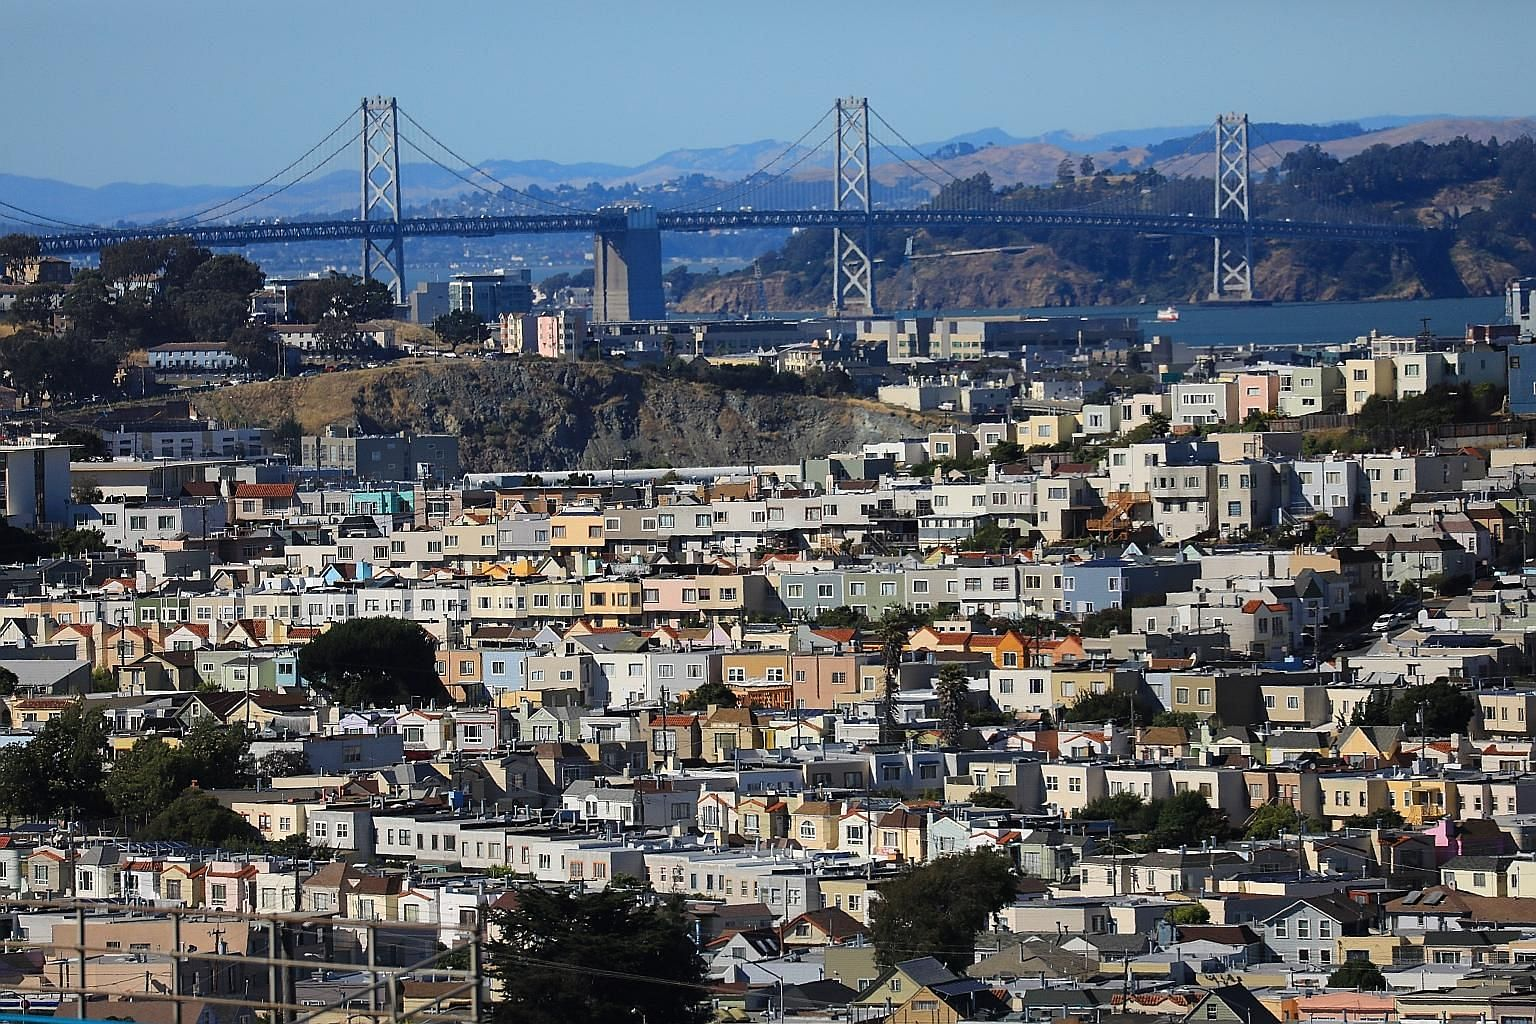 Houses near the Bay Bridge in picturesque, but prohibitively pricey, San Francisco. A family of four earning US$117,000 (S$158,800) is now classified as low income in the San Francisco area. This threshold, used to determine eligibility for federal h